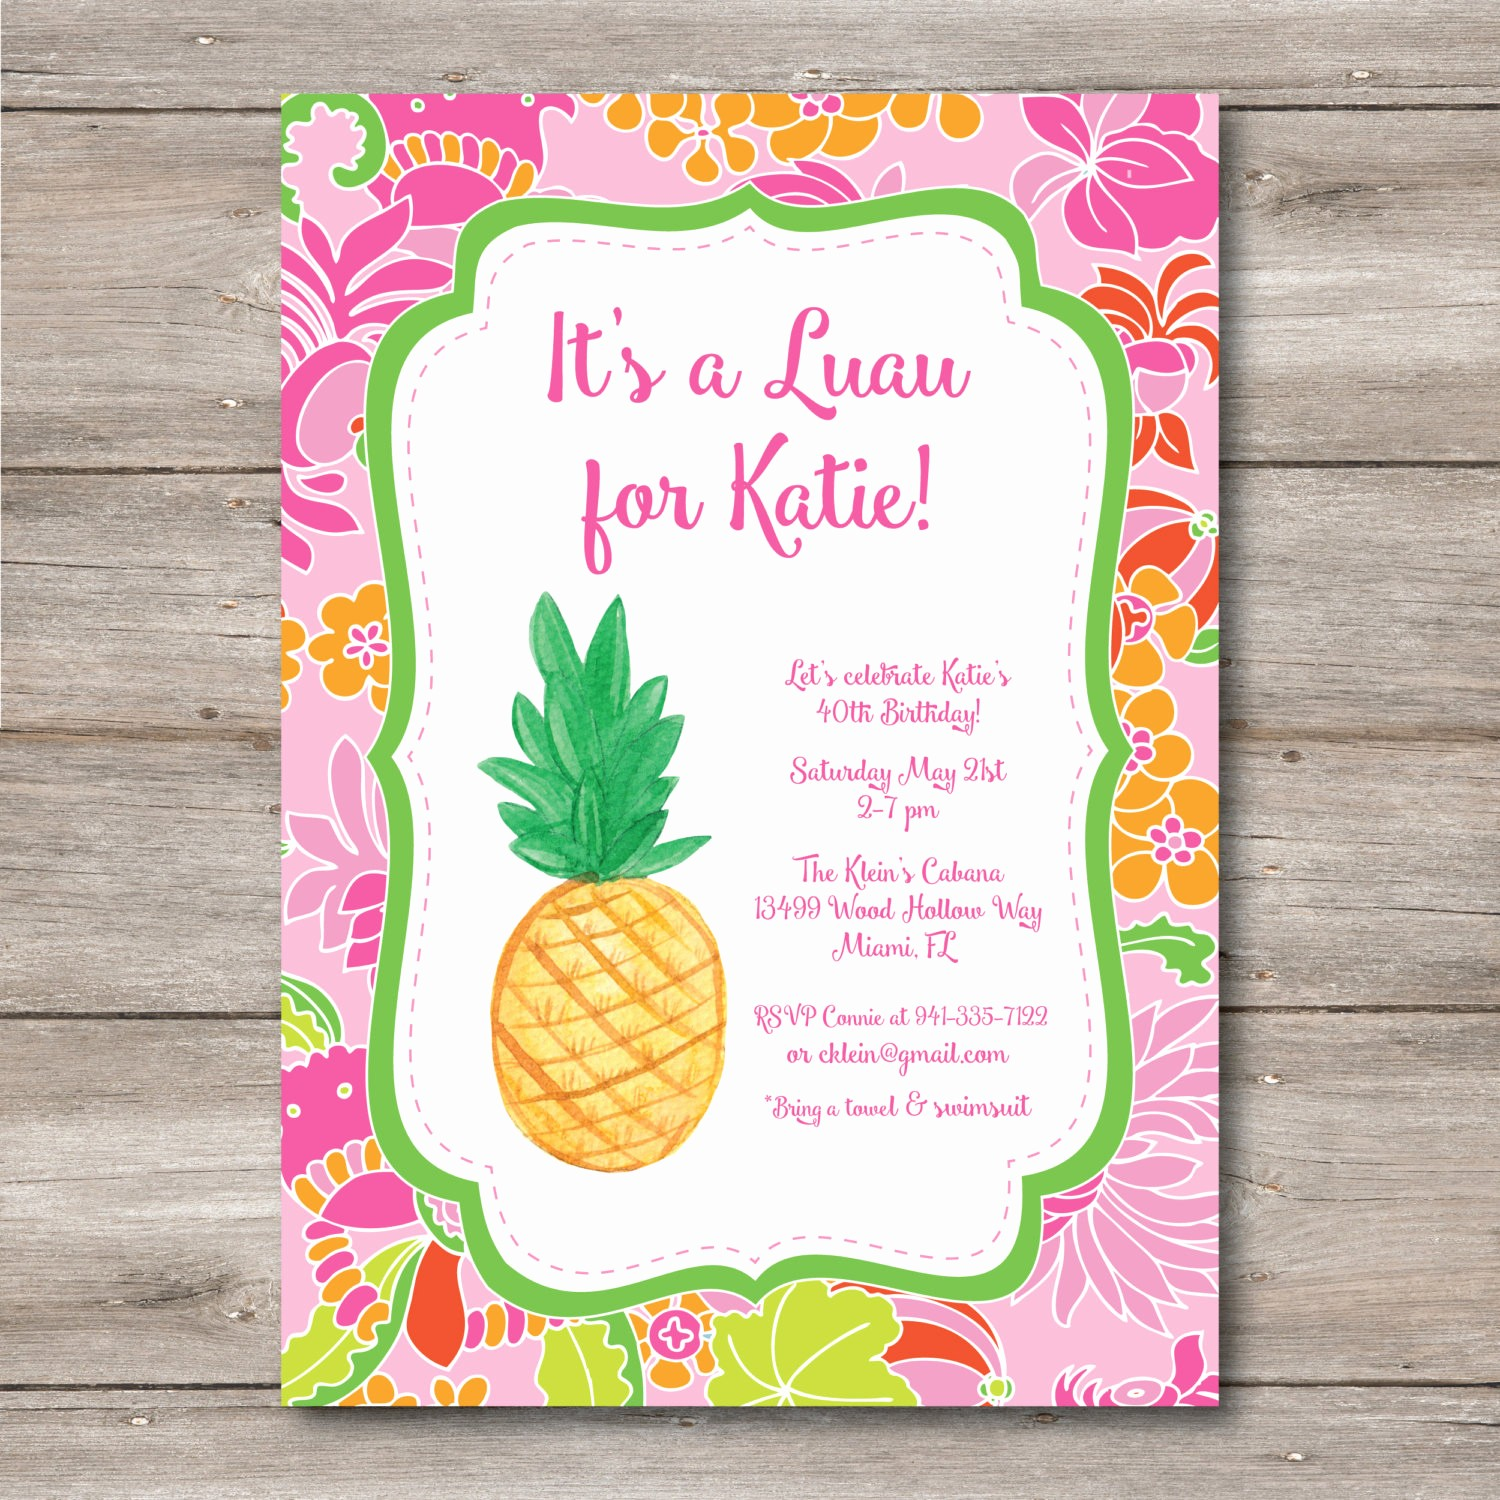 Luau Party Invitations Templates Free Elegant Luau Invitation with Editable Text to Print at Home Diy Luau